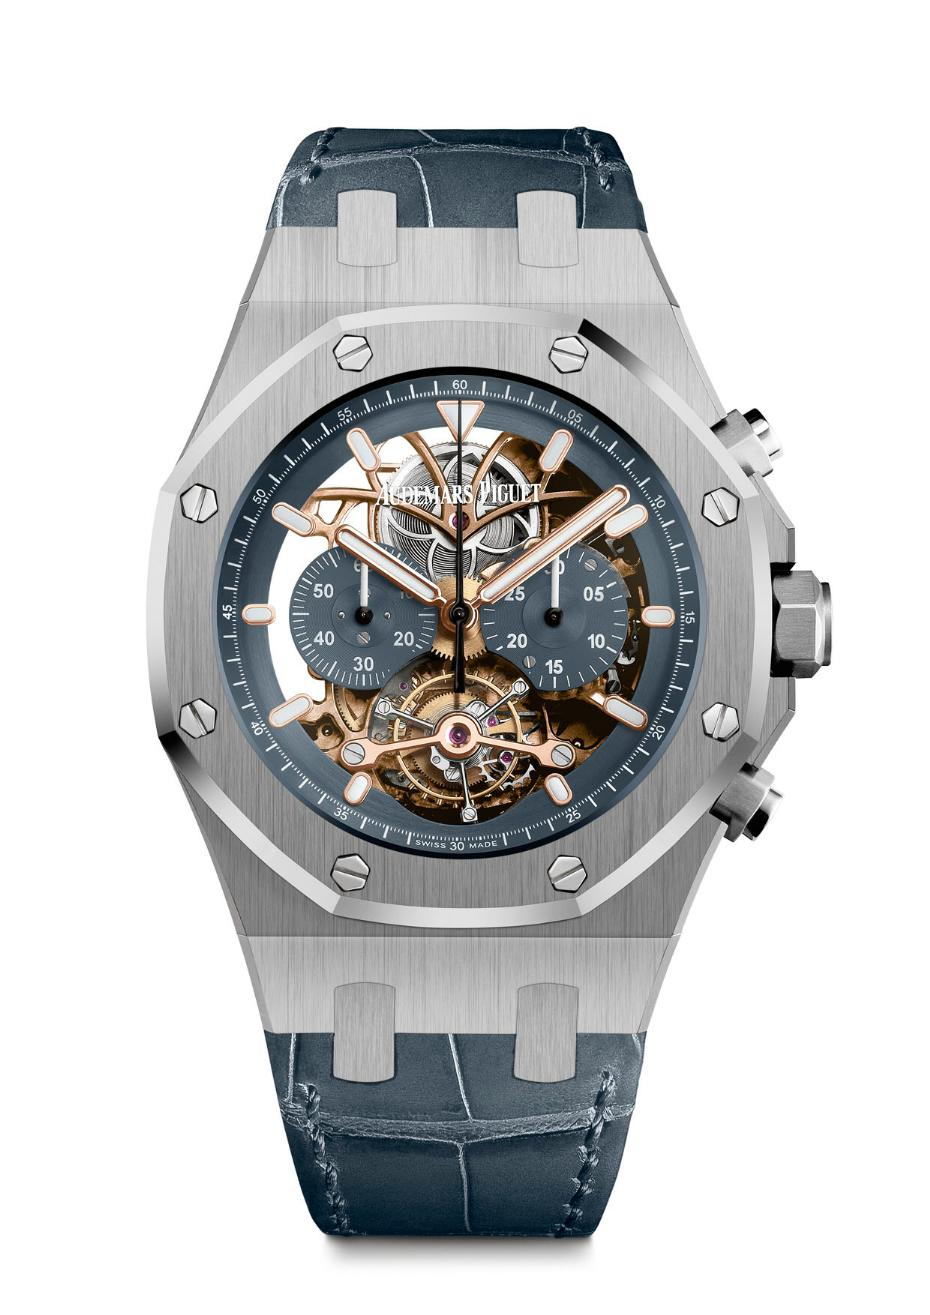 Audemars Piguet Royal Oak Tourbillon Chrono Openworked, Audemars Piguet SIHH 2016, Royal Oak Tourbillon Chrono Openworked, APRO Tourbillon Chrono Openworked